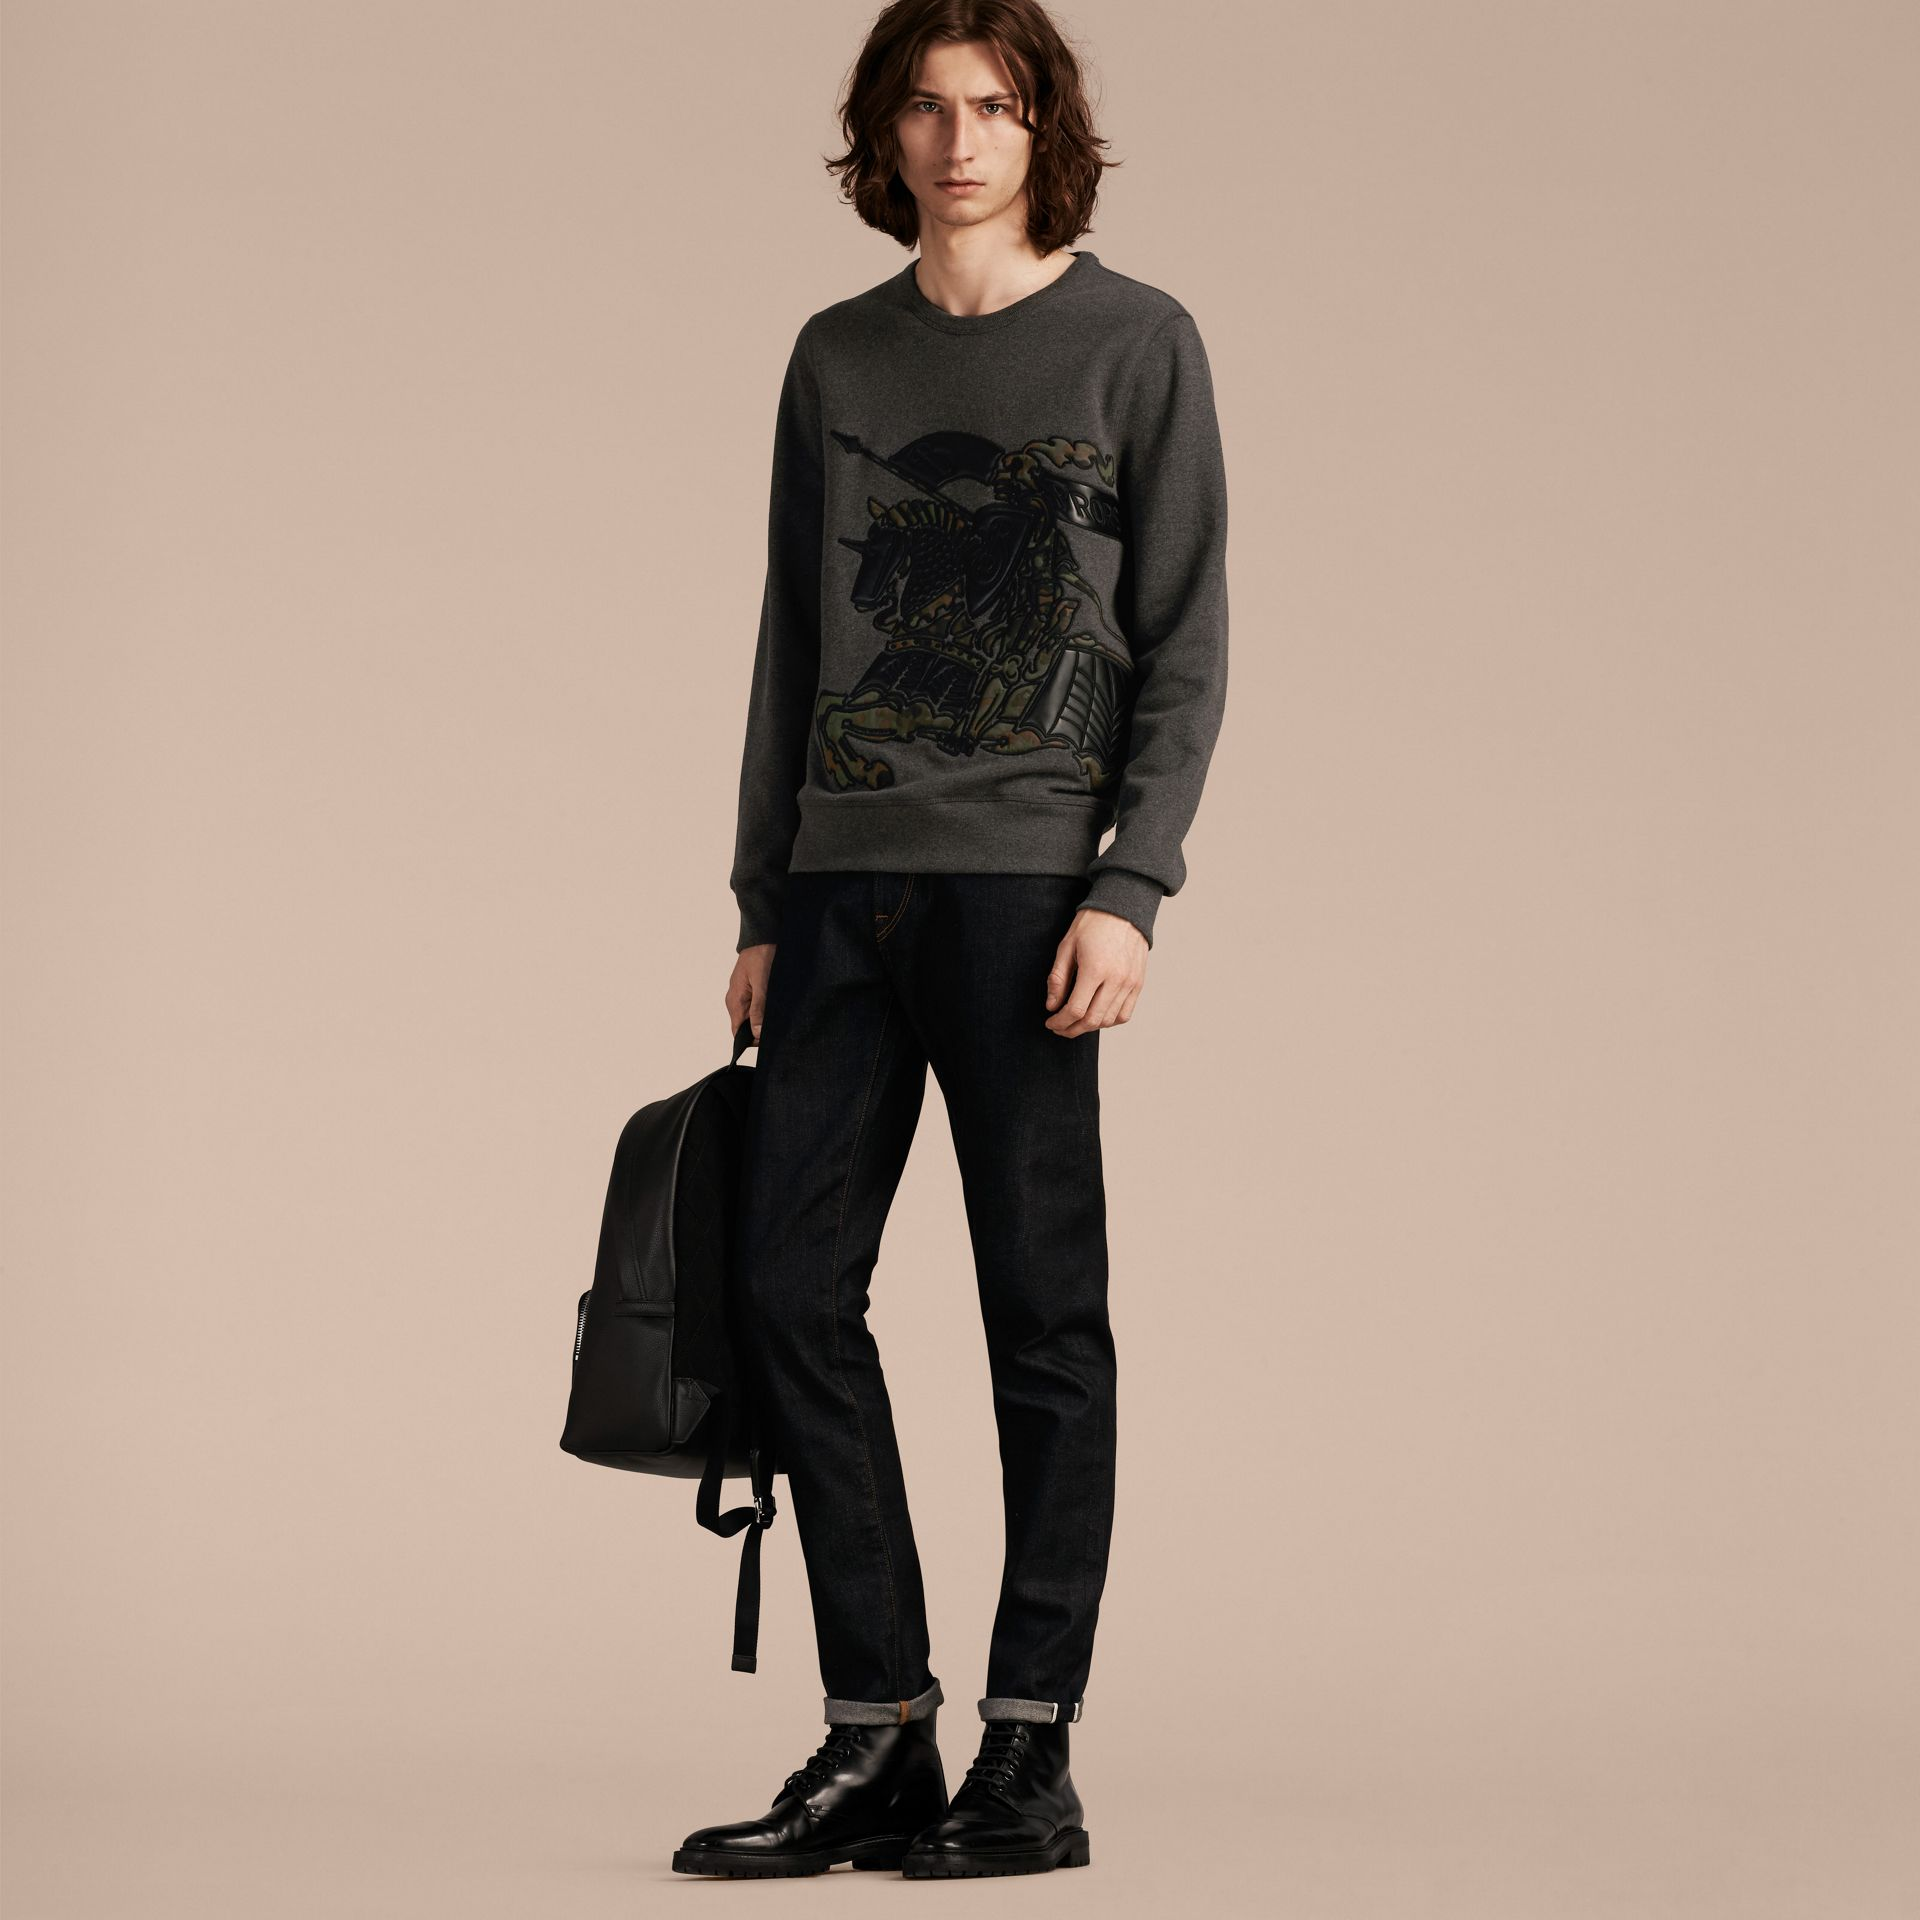 Charcoal melange Equestrian Knight Motif Cotton and Lambskin Sweatshirt - gallery image 6